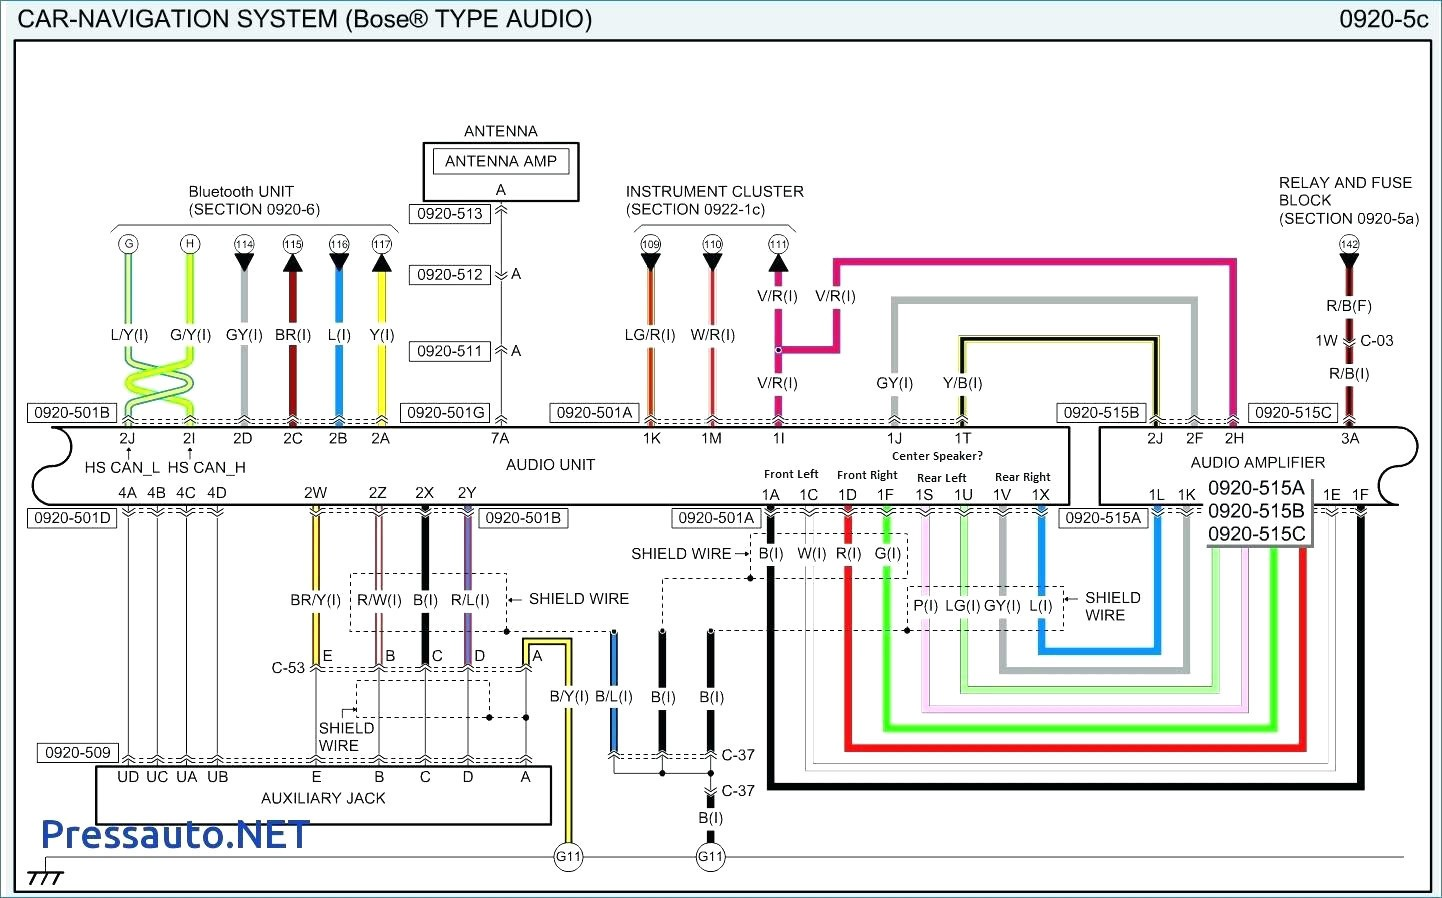 diagram] 2005 chrysler 300 touring wiring diagram full version hd quality wiring  diagram - bkswiringspecialists.editionsdusamovar.fr  bkswiringspecialists.editionsdusamovar.fr